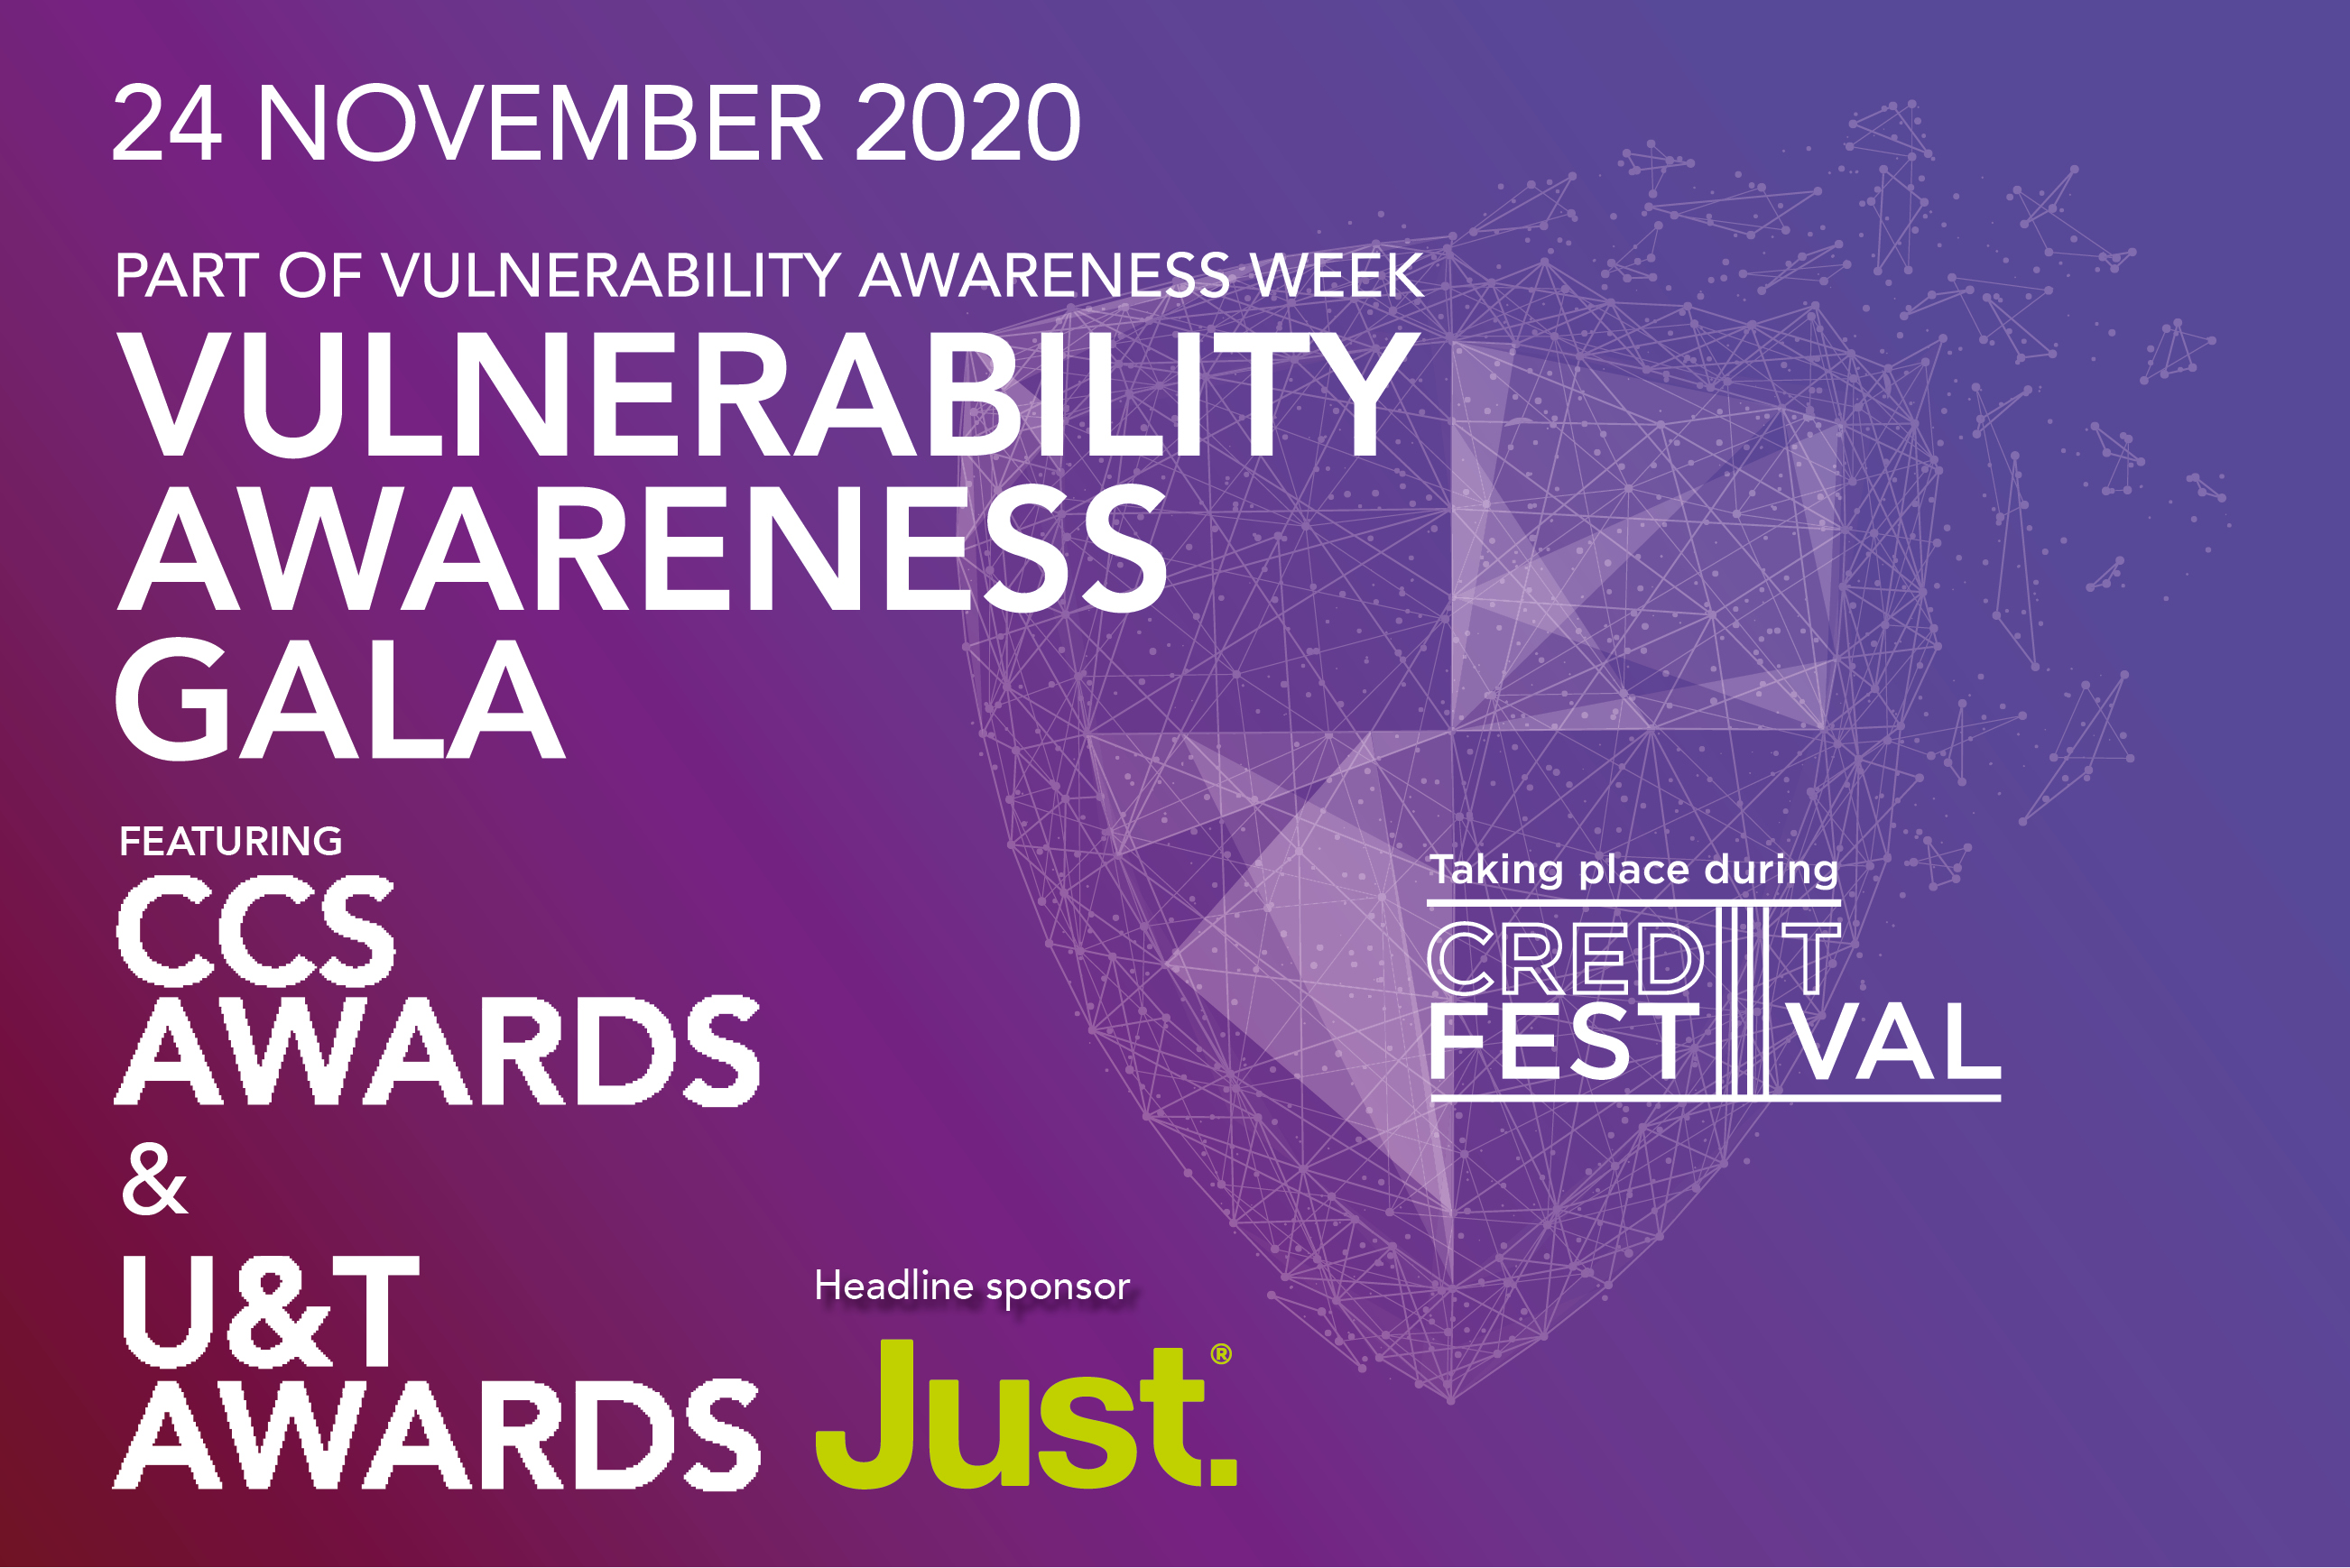 Vulnerability Awareness Gala